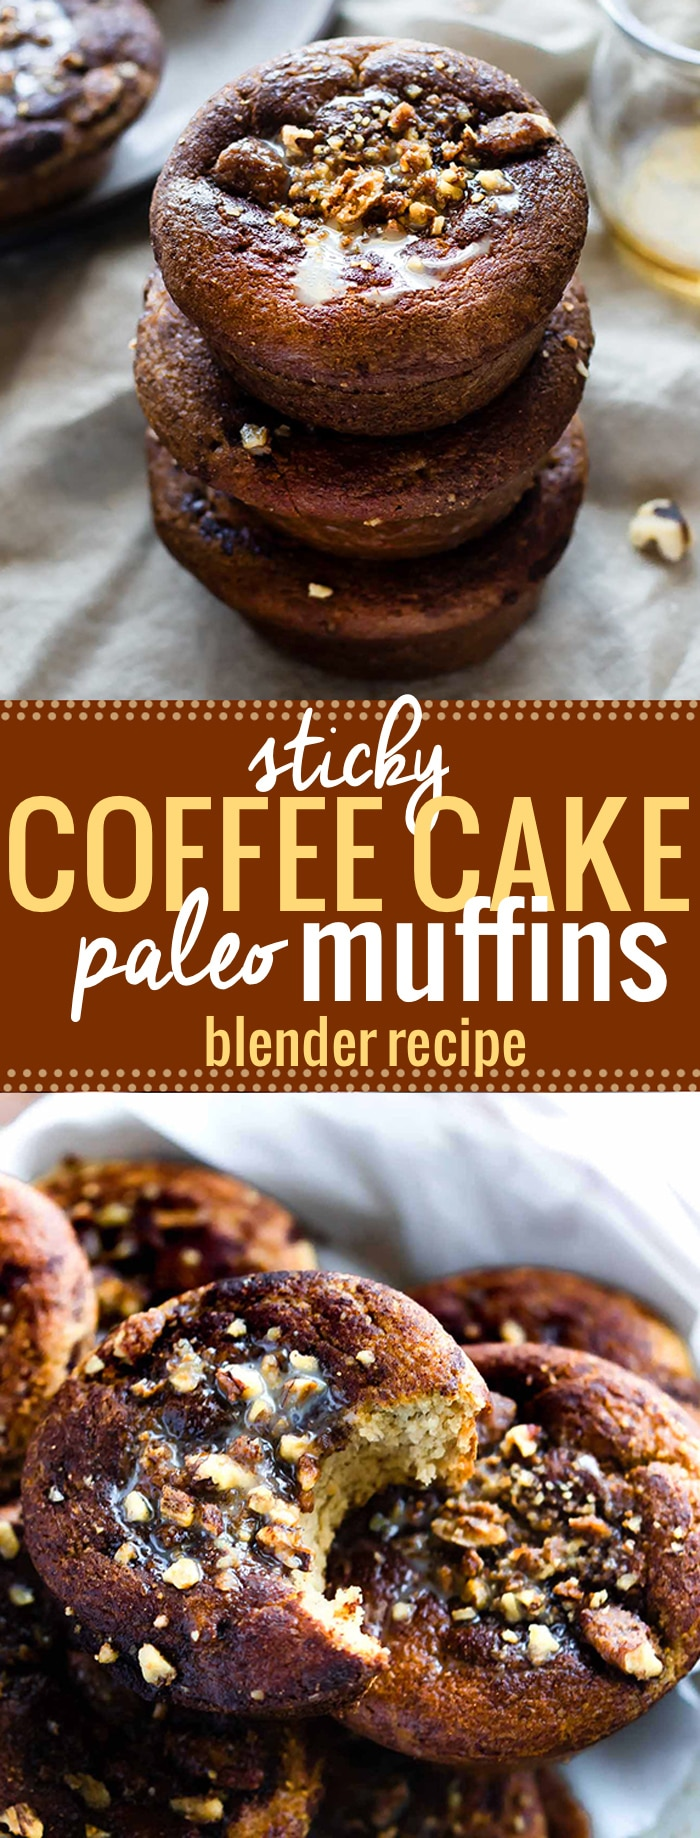 Blender Paleo Sticky Coffee Cake Muffins; a healthy gluten free mini version of your favorite coffee cake! These Paleo Coffee Cake Muffins are made easy in the blender, baked in under 30 minutes, then topped with sticky maple nut topping. A perfect pair with that cup of coffee. Enjoy for breakfast, brunch, or anytime! @cottercrunch